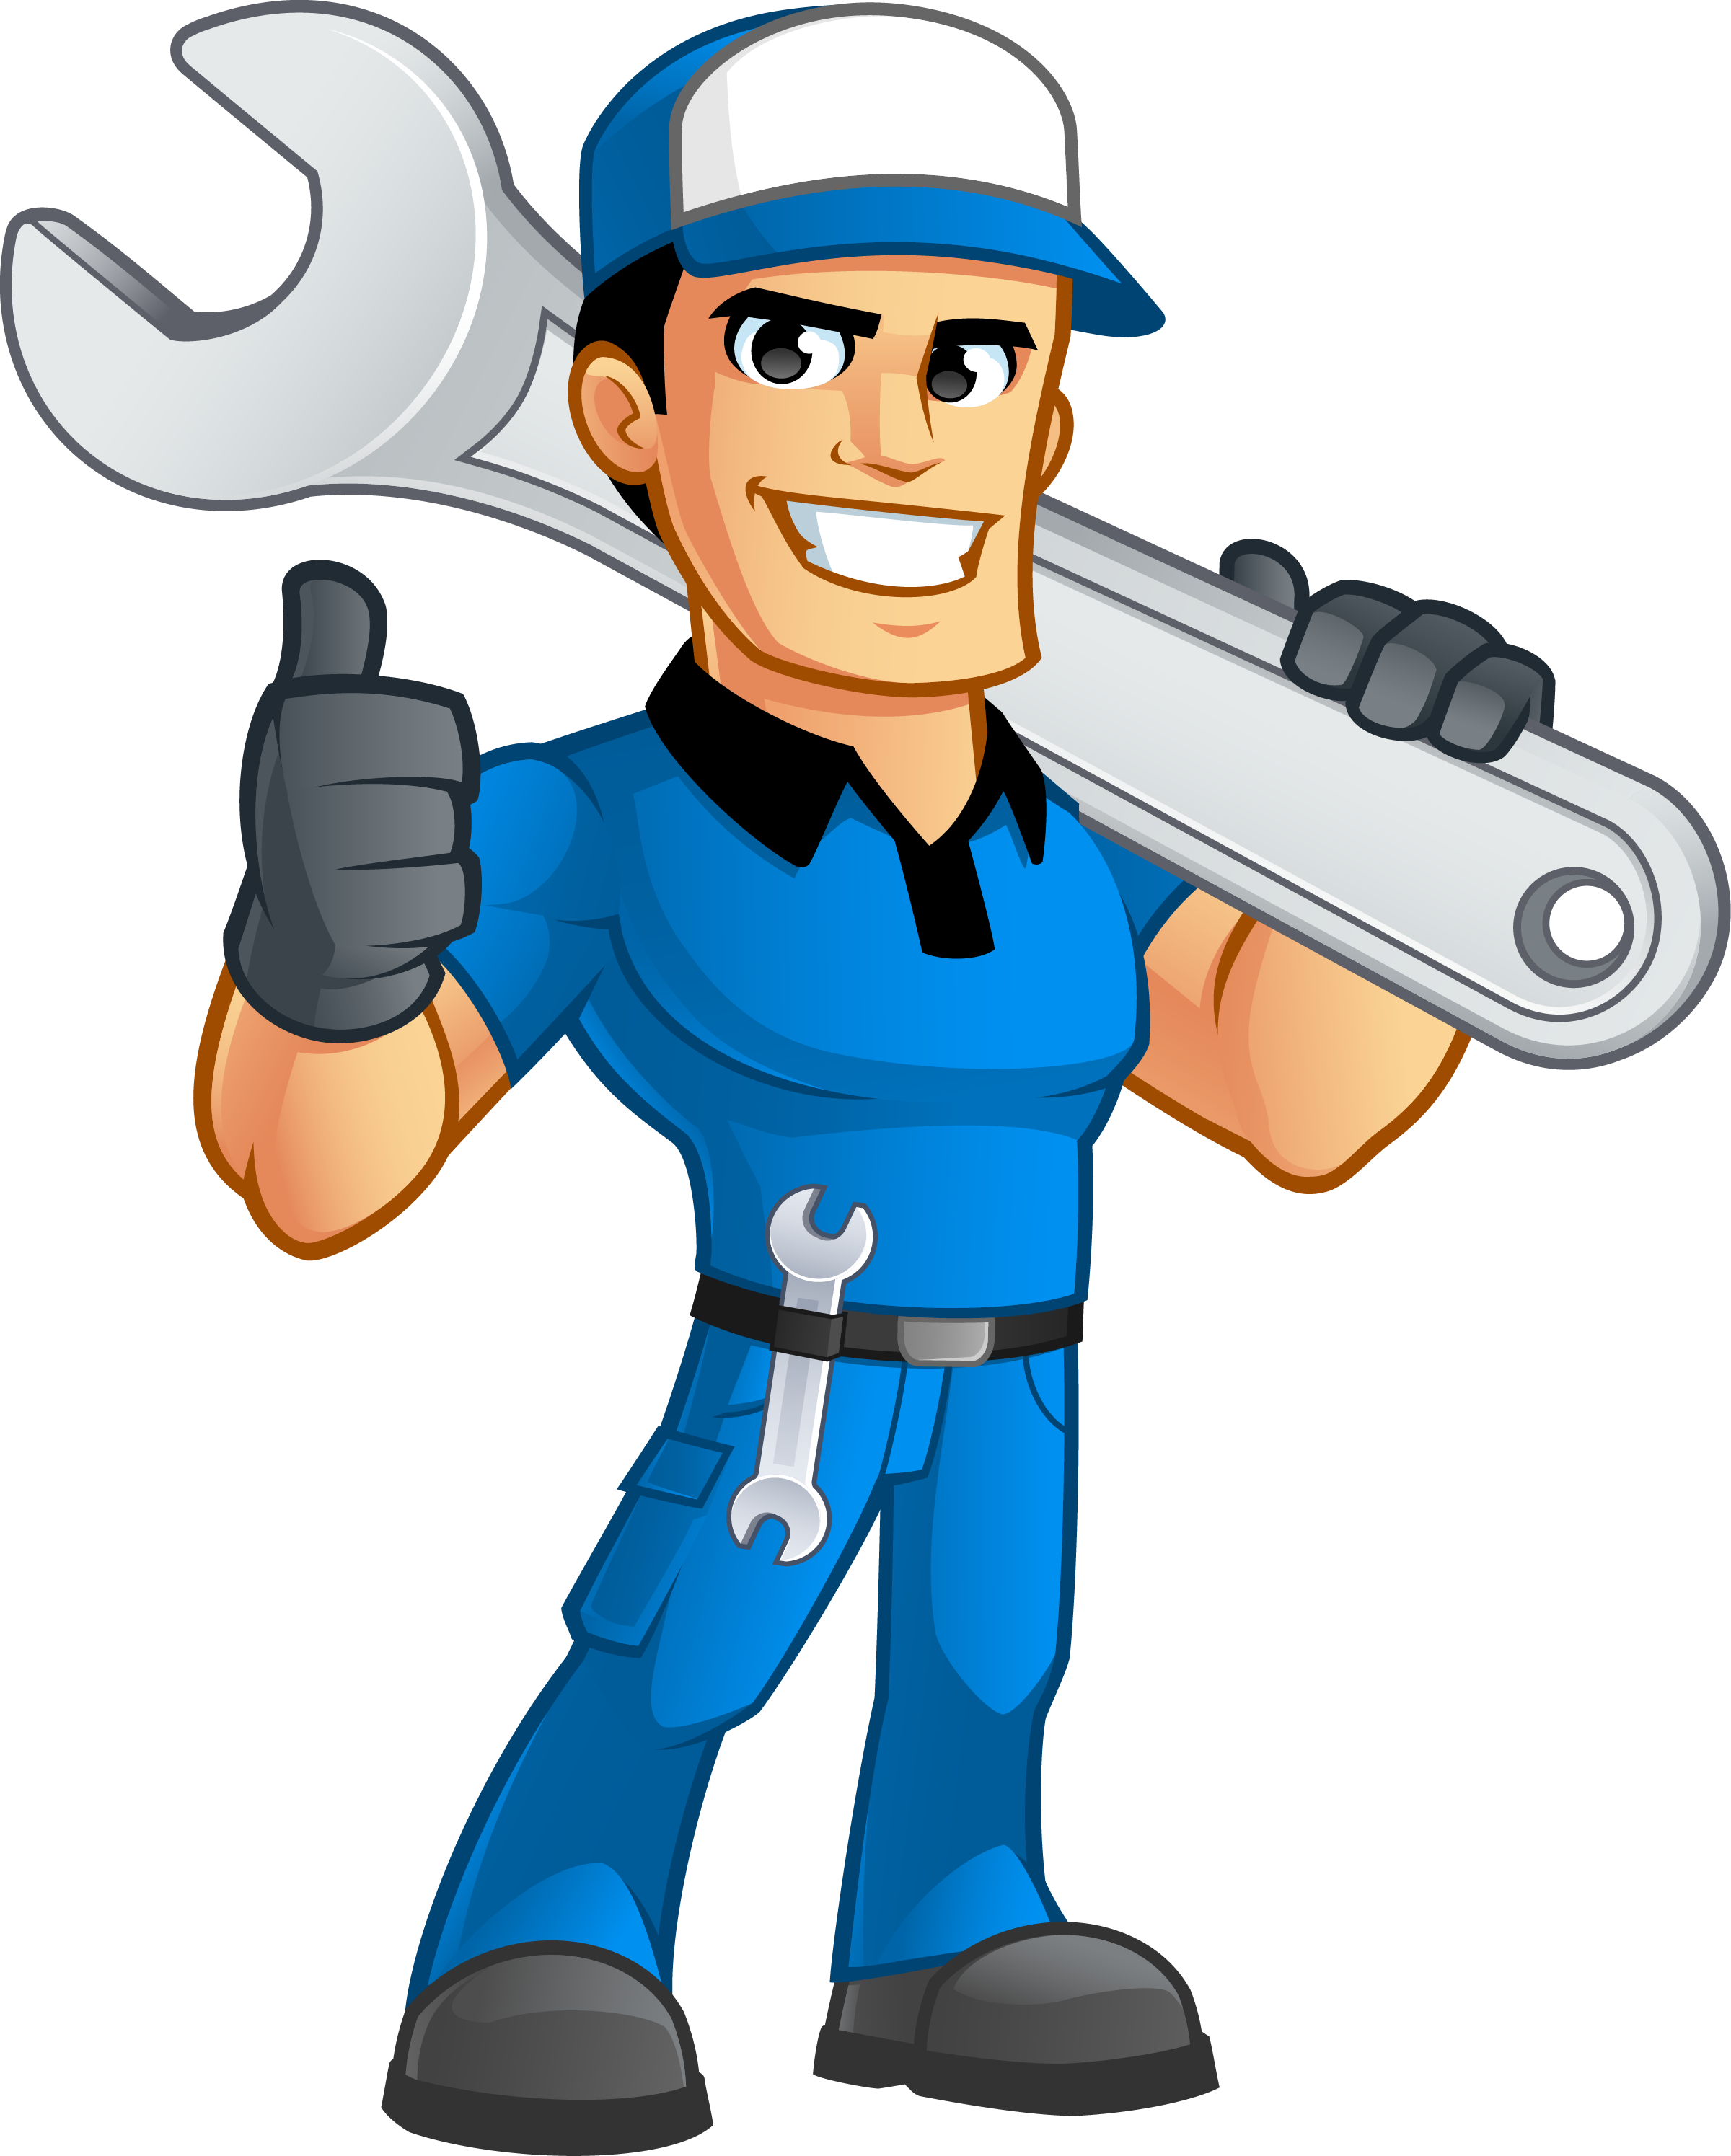 Mechanic working on car clipart clip art Car Auto mechanic Clip art - worker 2400*2990 transprent Png Free ... clip art